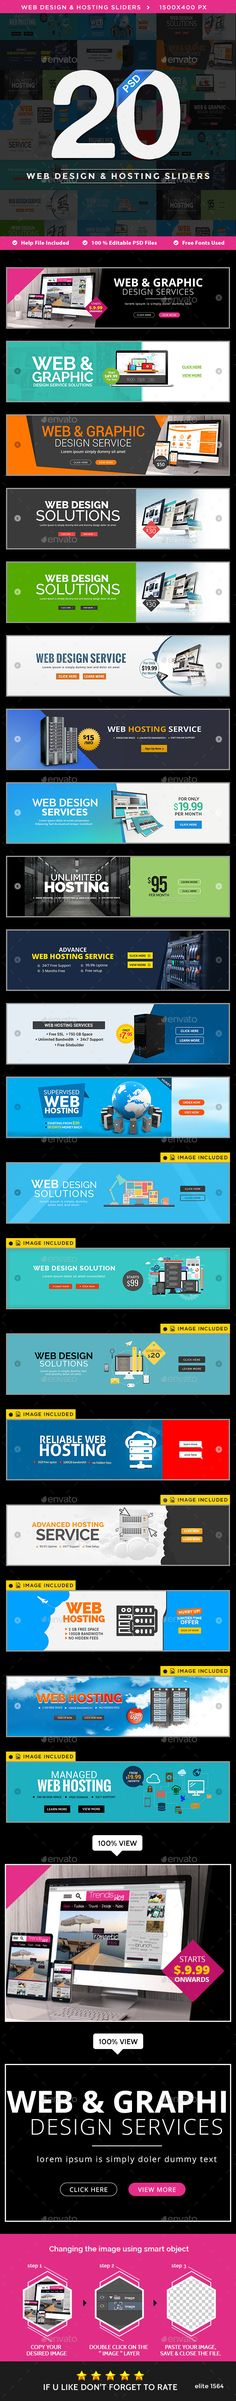 Web Design Hosting Sliders 20 Designs